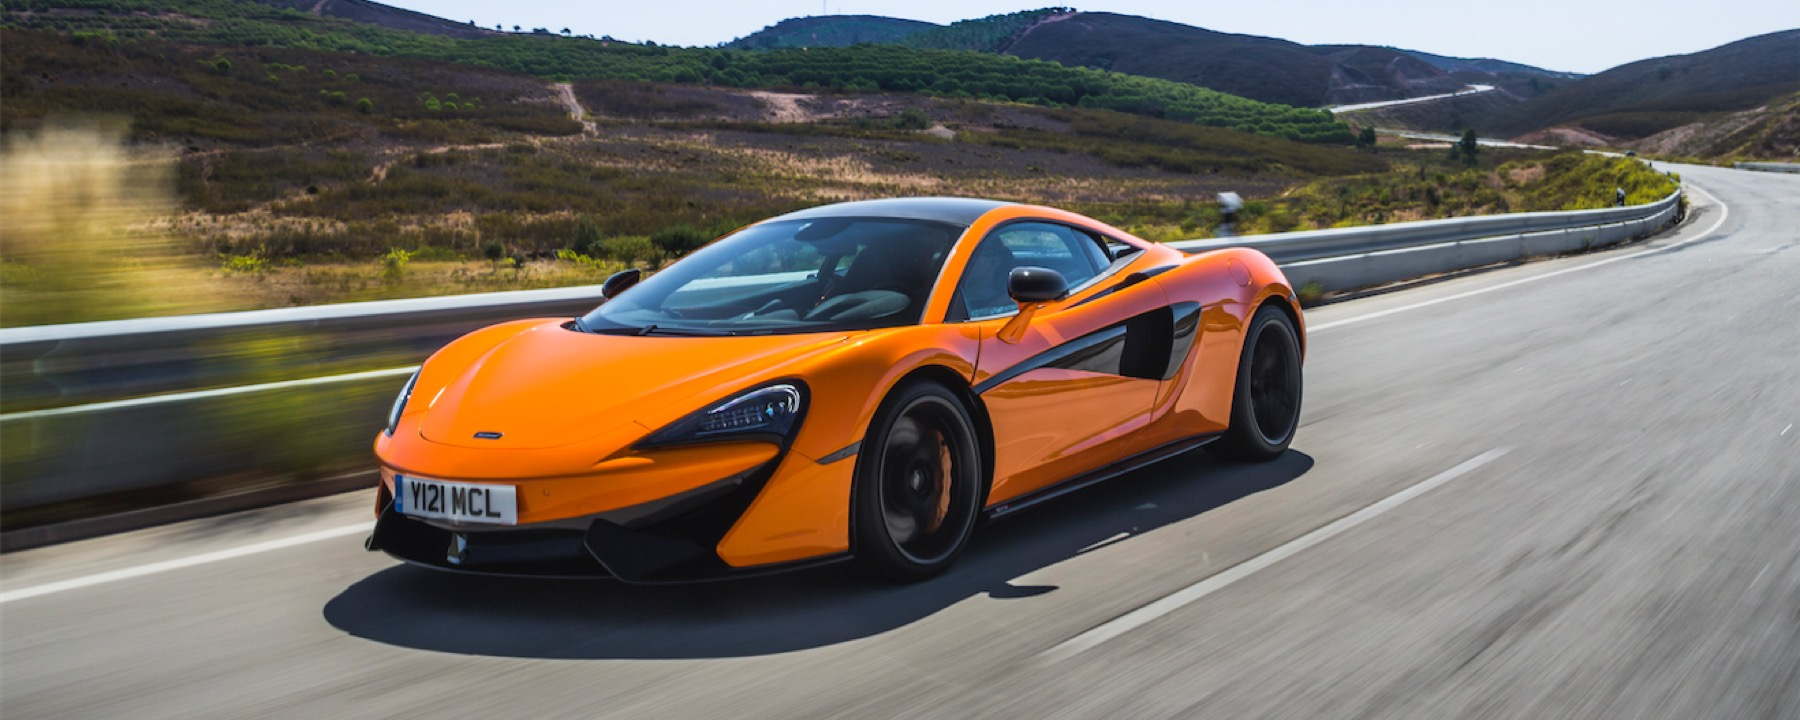 The McLaren Receives National Acclaim In McLaren Rancho - Best sports coupe 2016